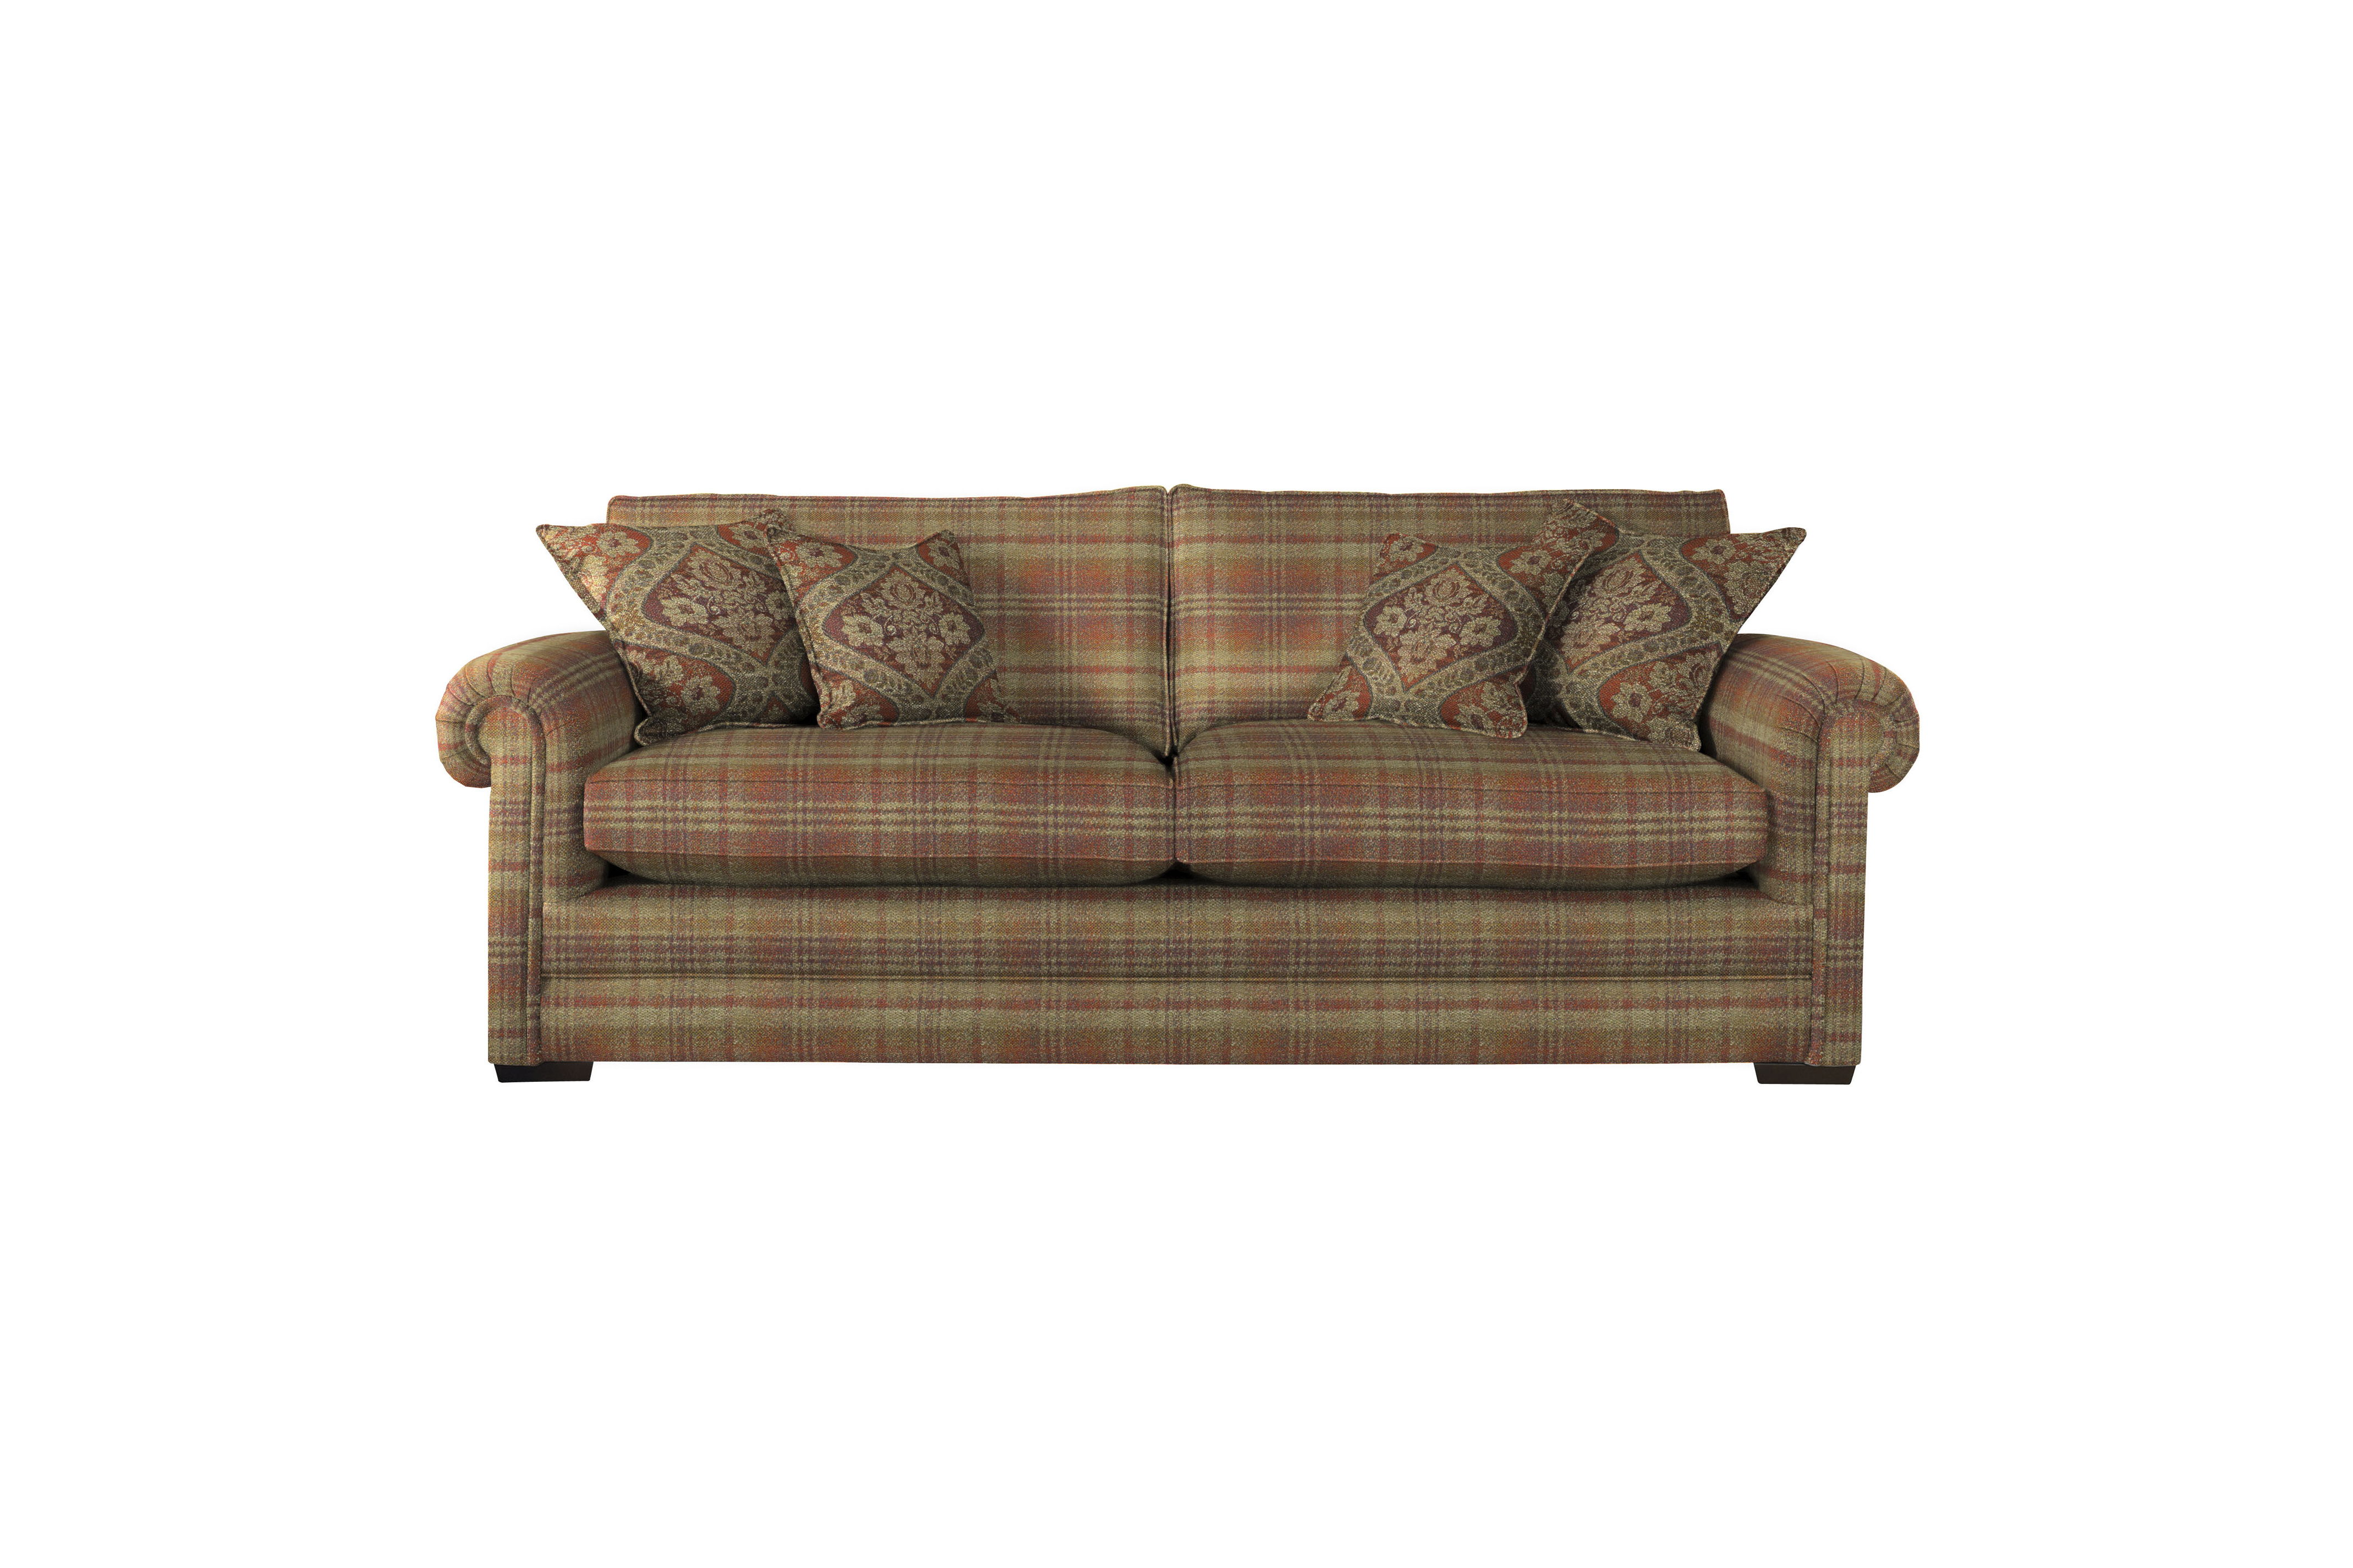 parker knoll canterbury sofa bed vinegar to clean fabric grand hatters fine furnishings